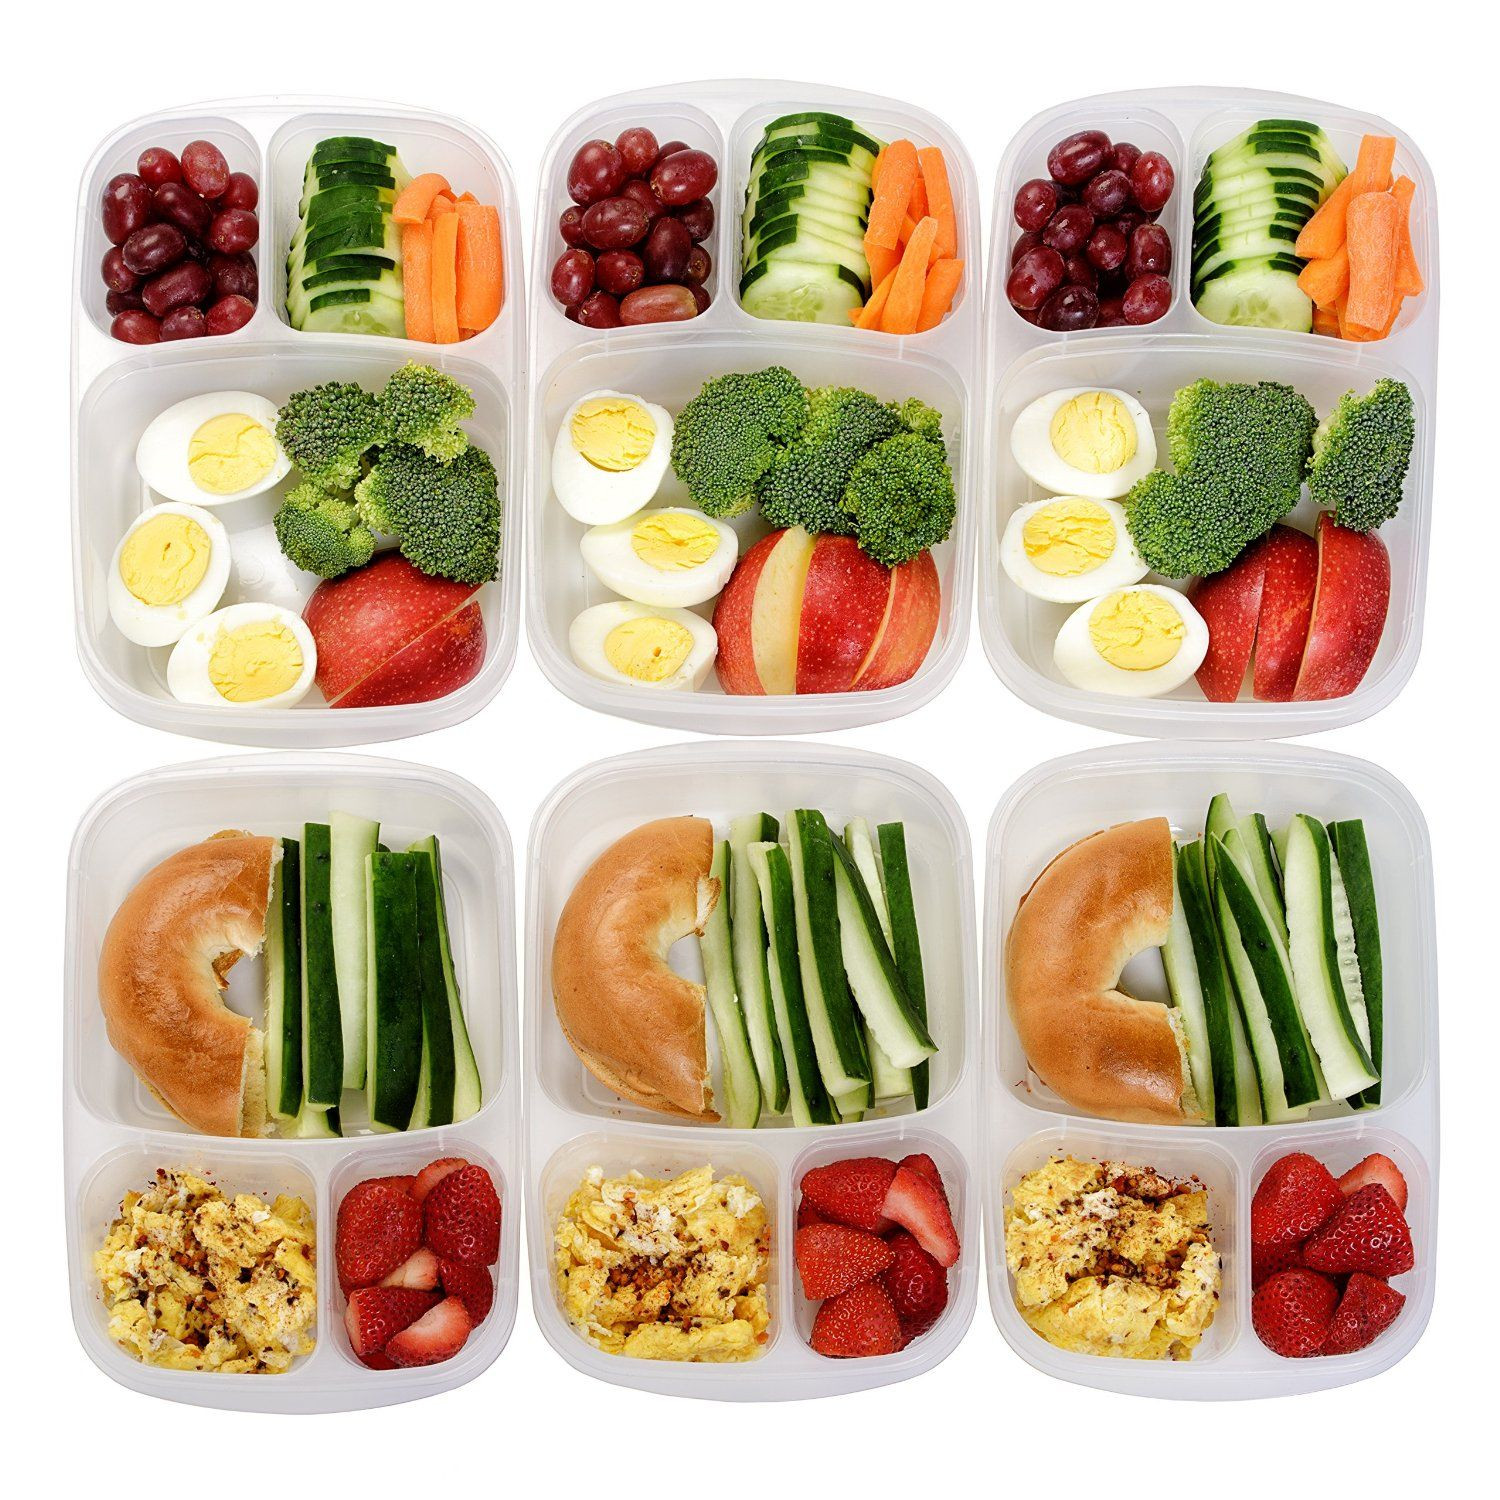 Healthy Snacks On The Go For Weight Loss  13 Make Ahead Meals and Snacks For Healthy Eating The